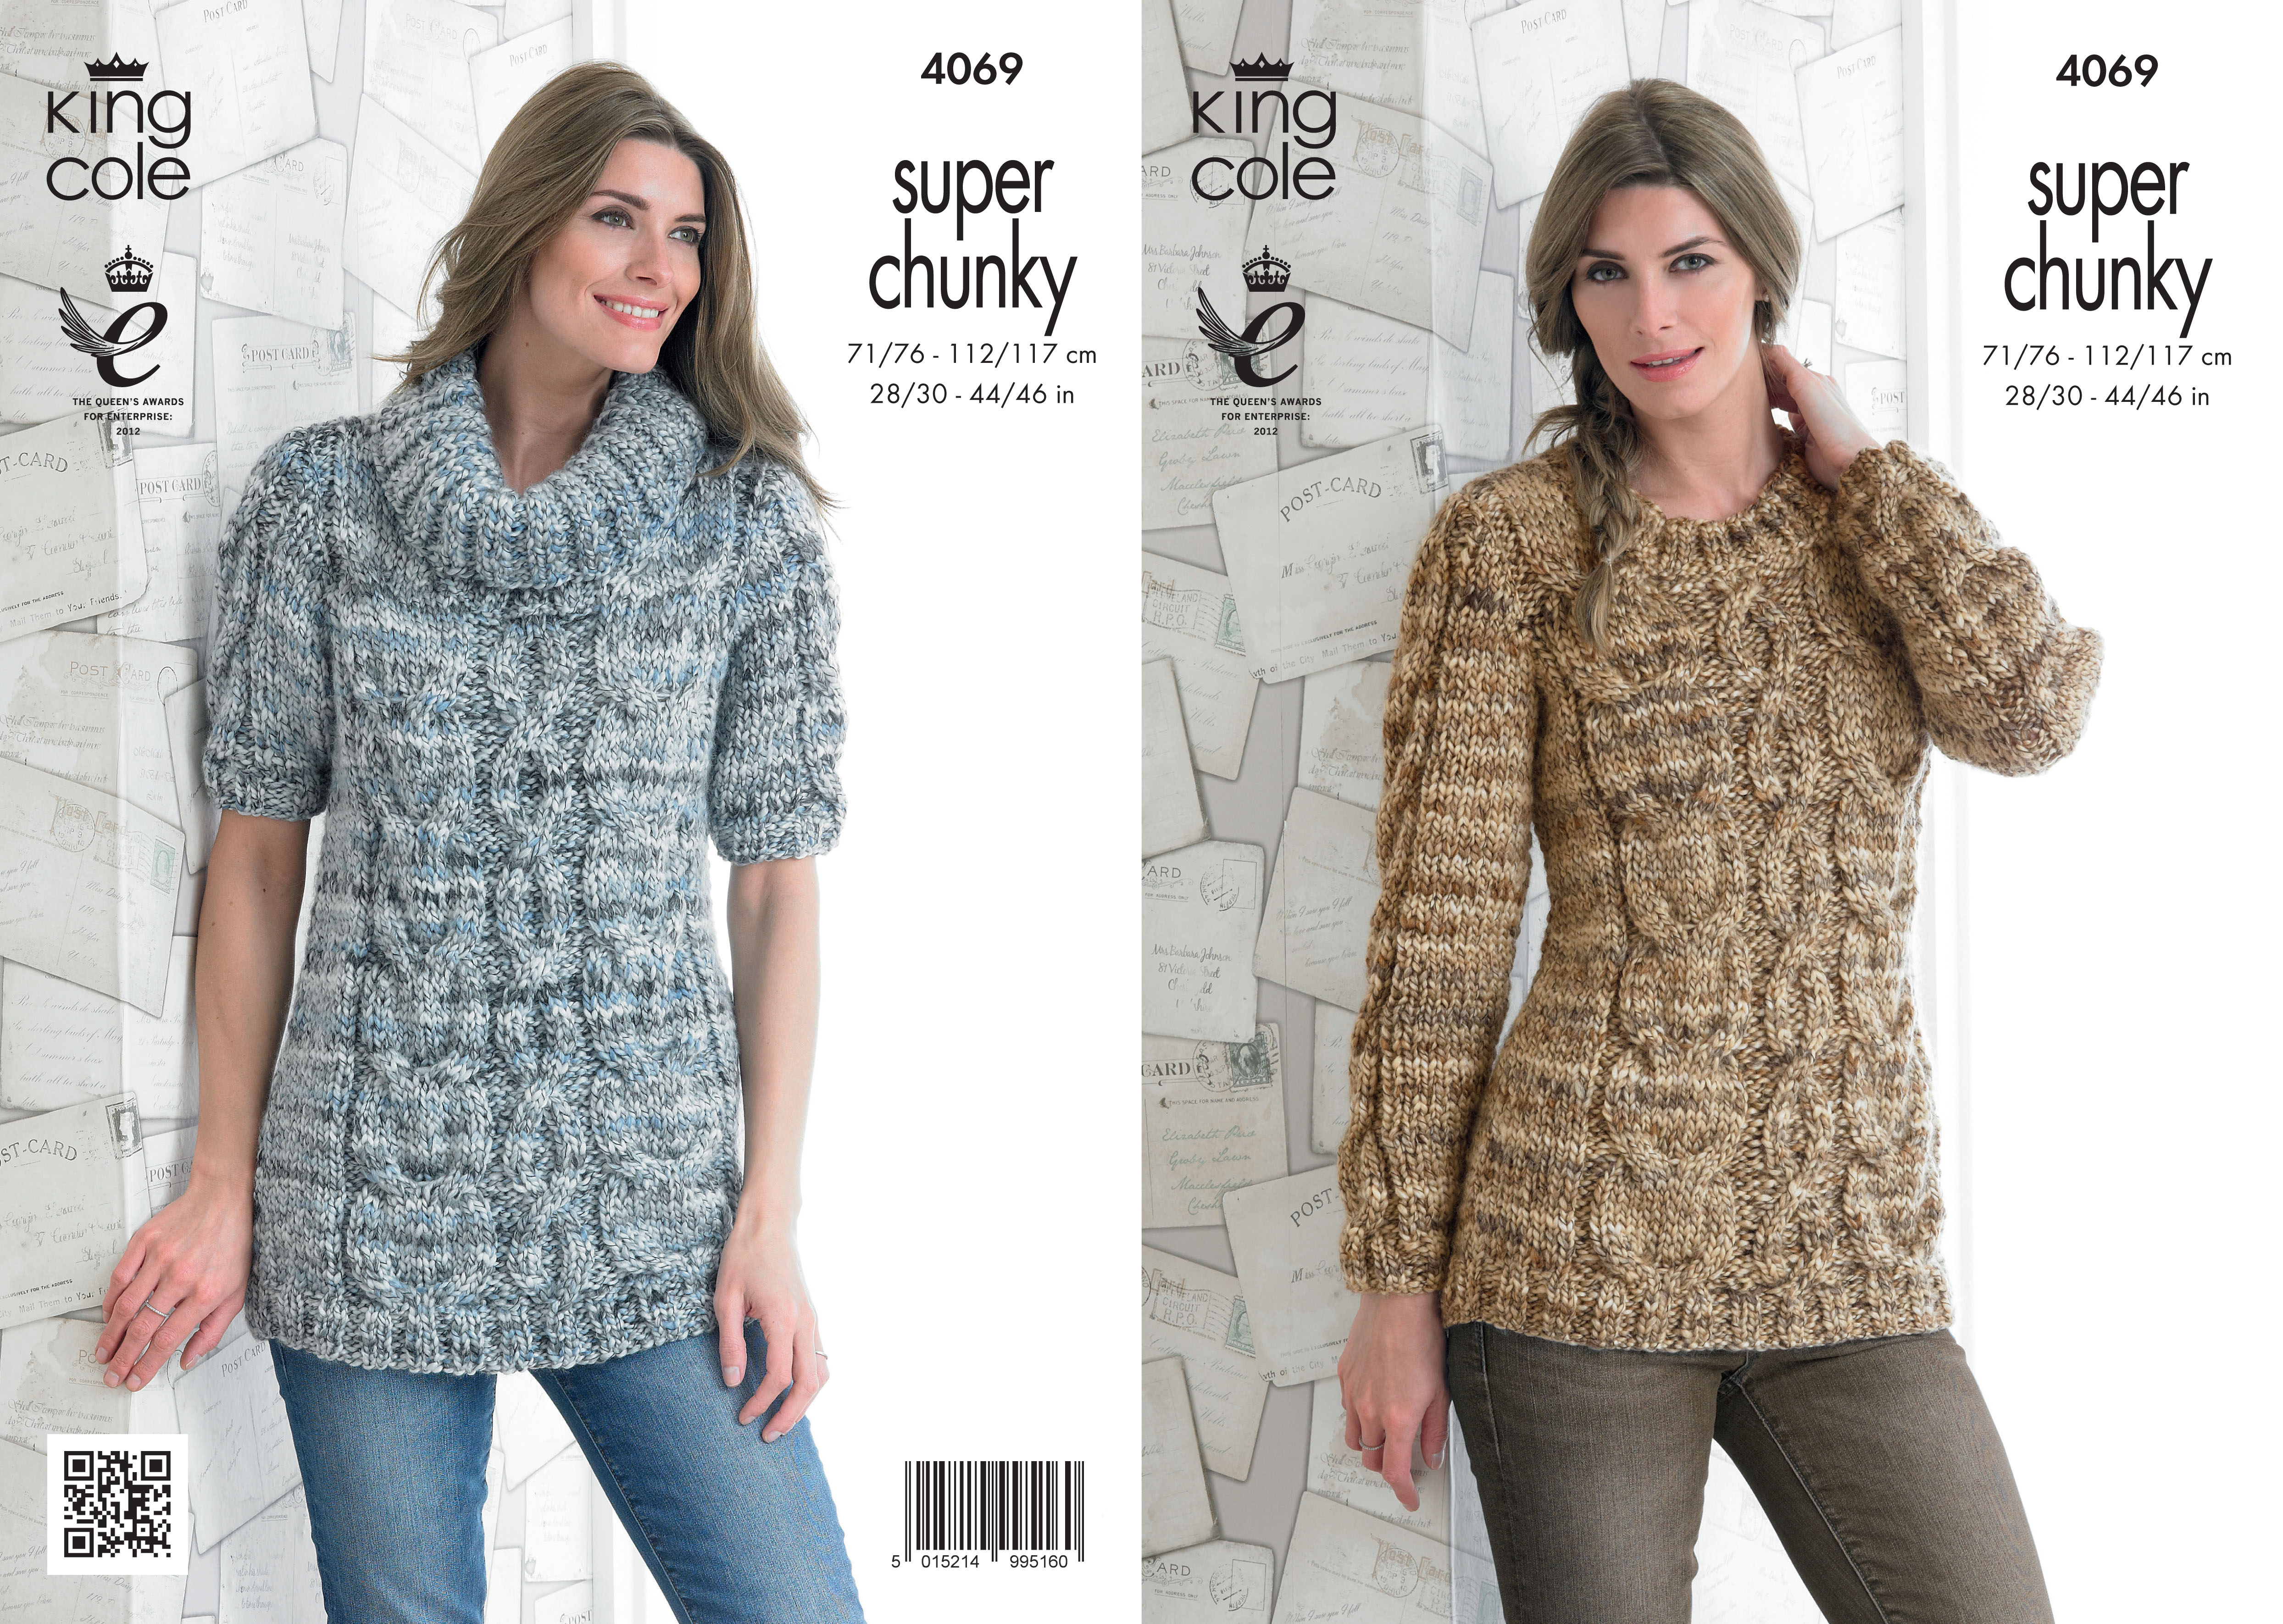 Free Knitting Pattern Ladies Chunky Jumper : Ladies Gypsy Super Chunky Pattern King Cole Cable Knit Cowl Neck Jumper 4069 ...